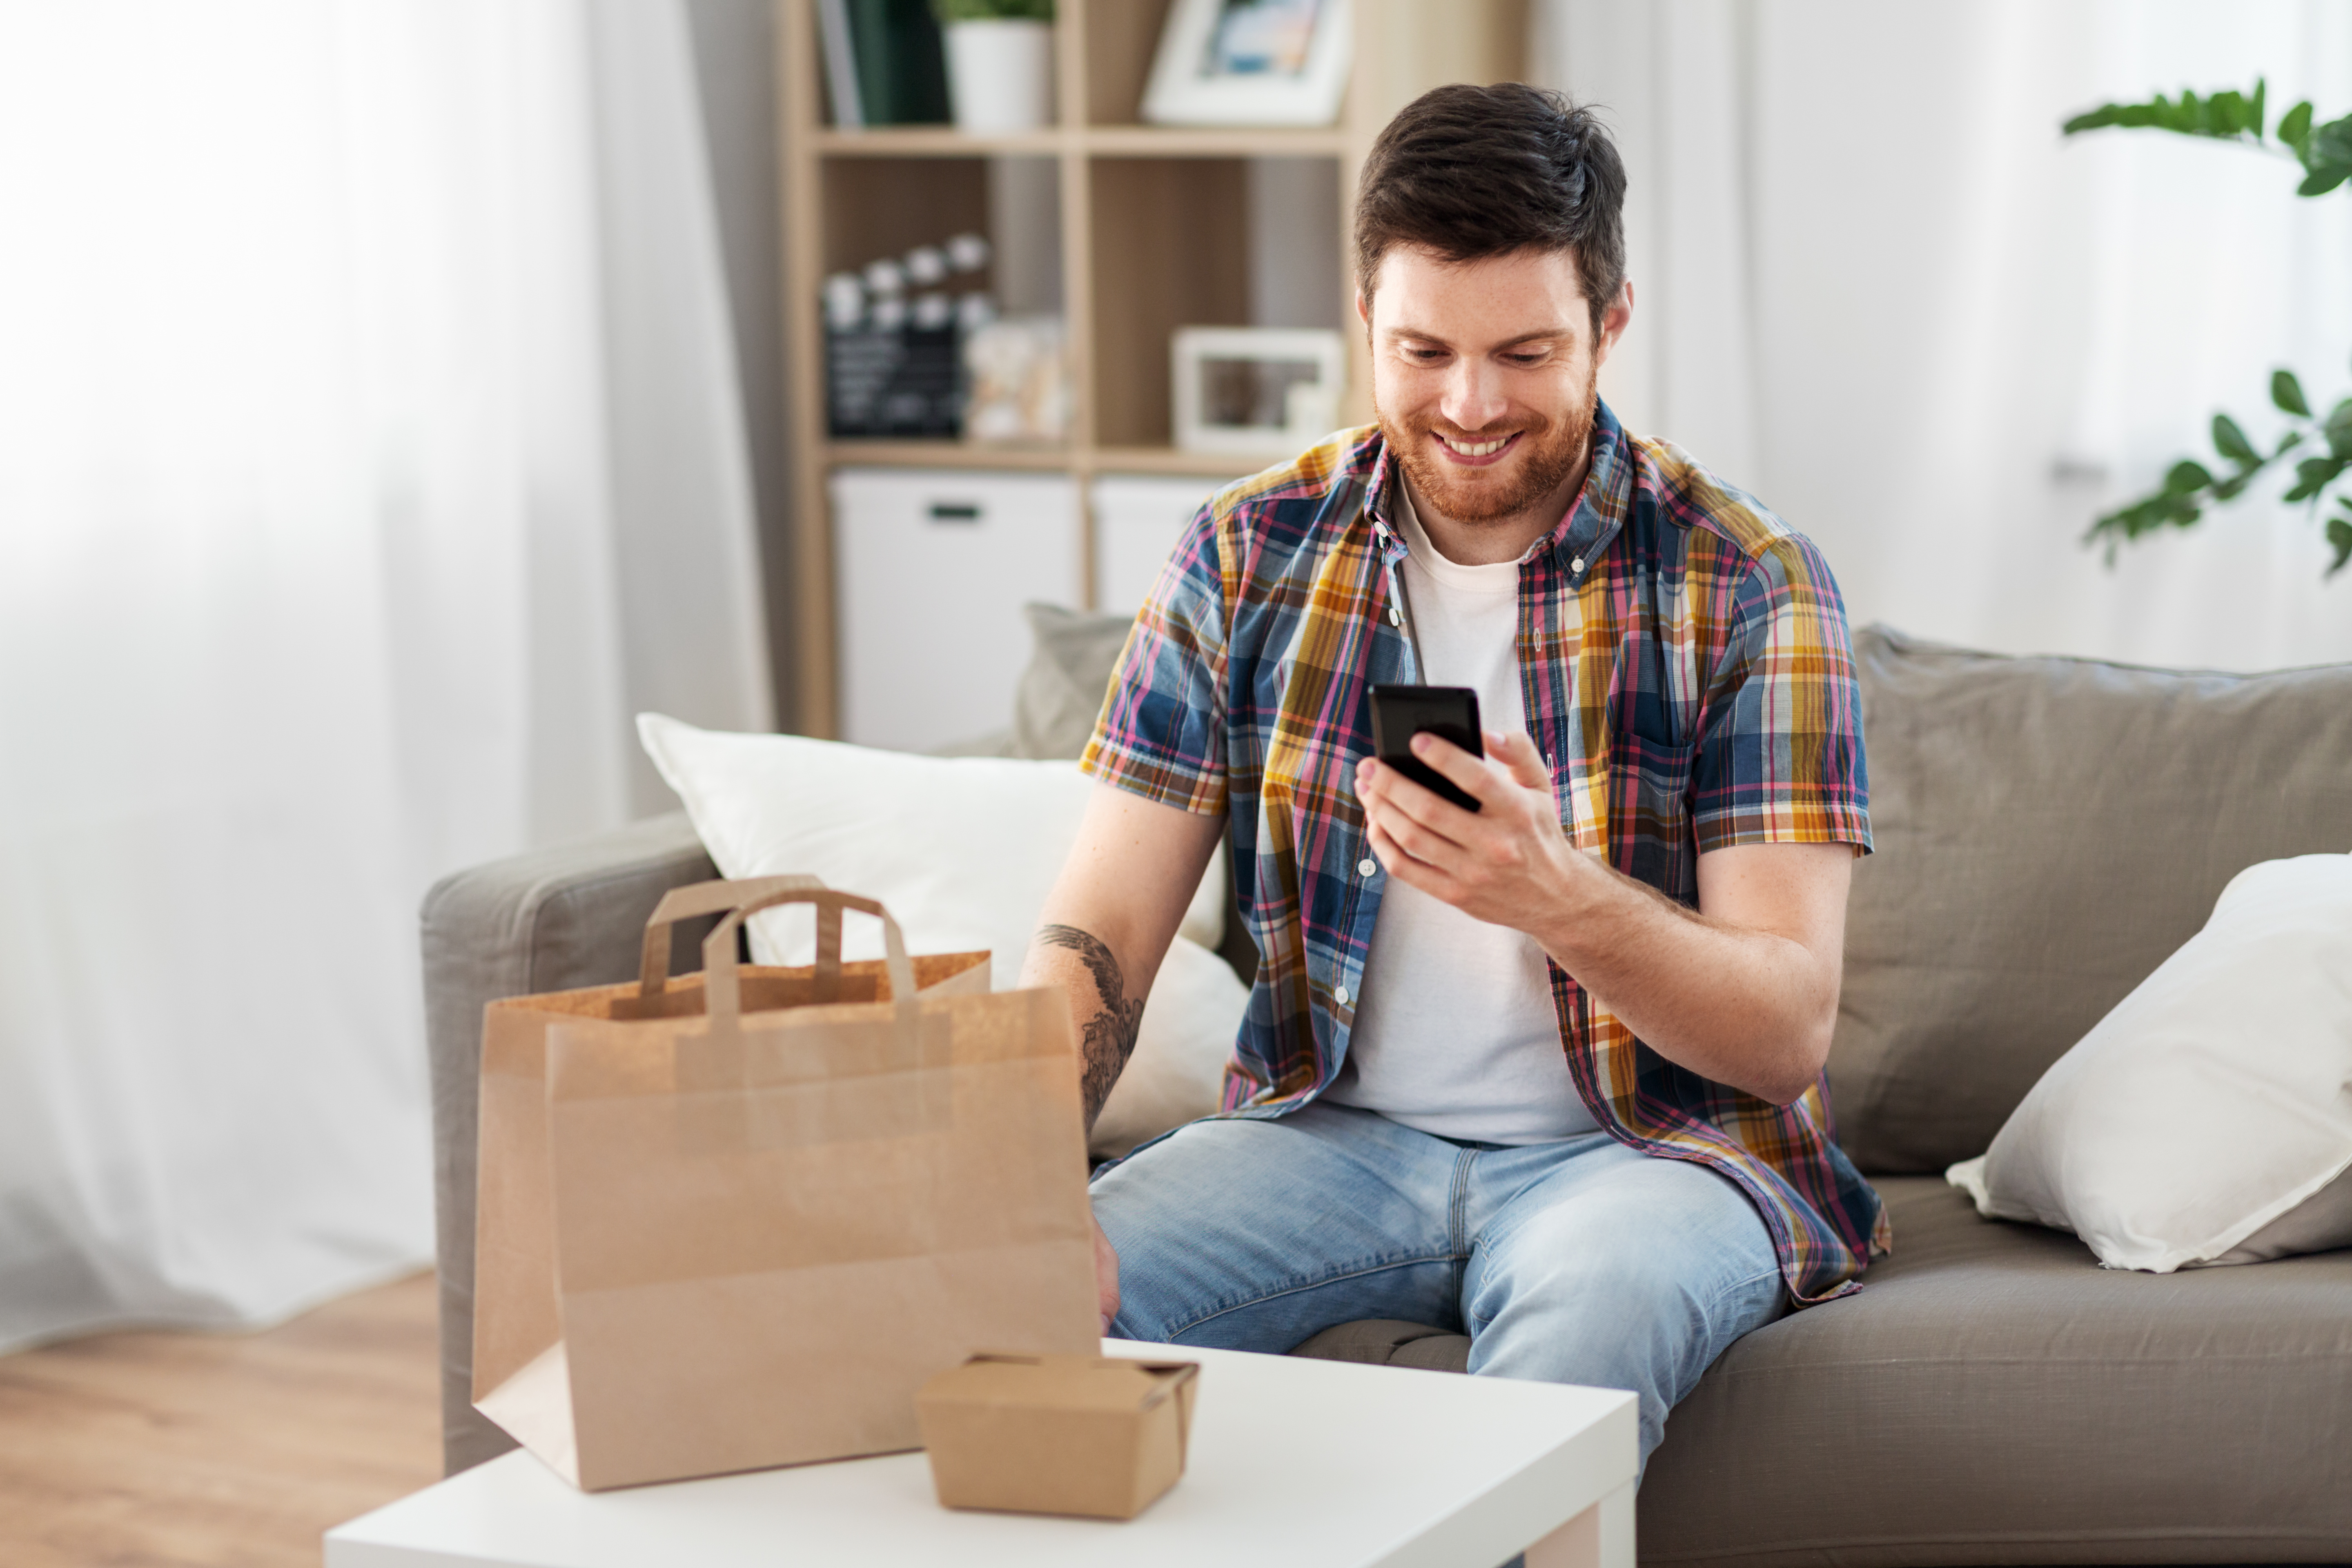 happy guy ordering take out